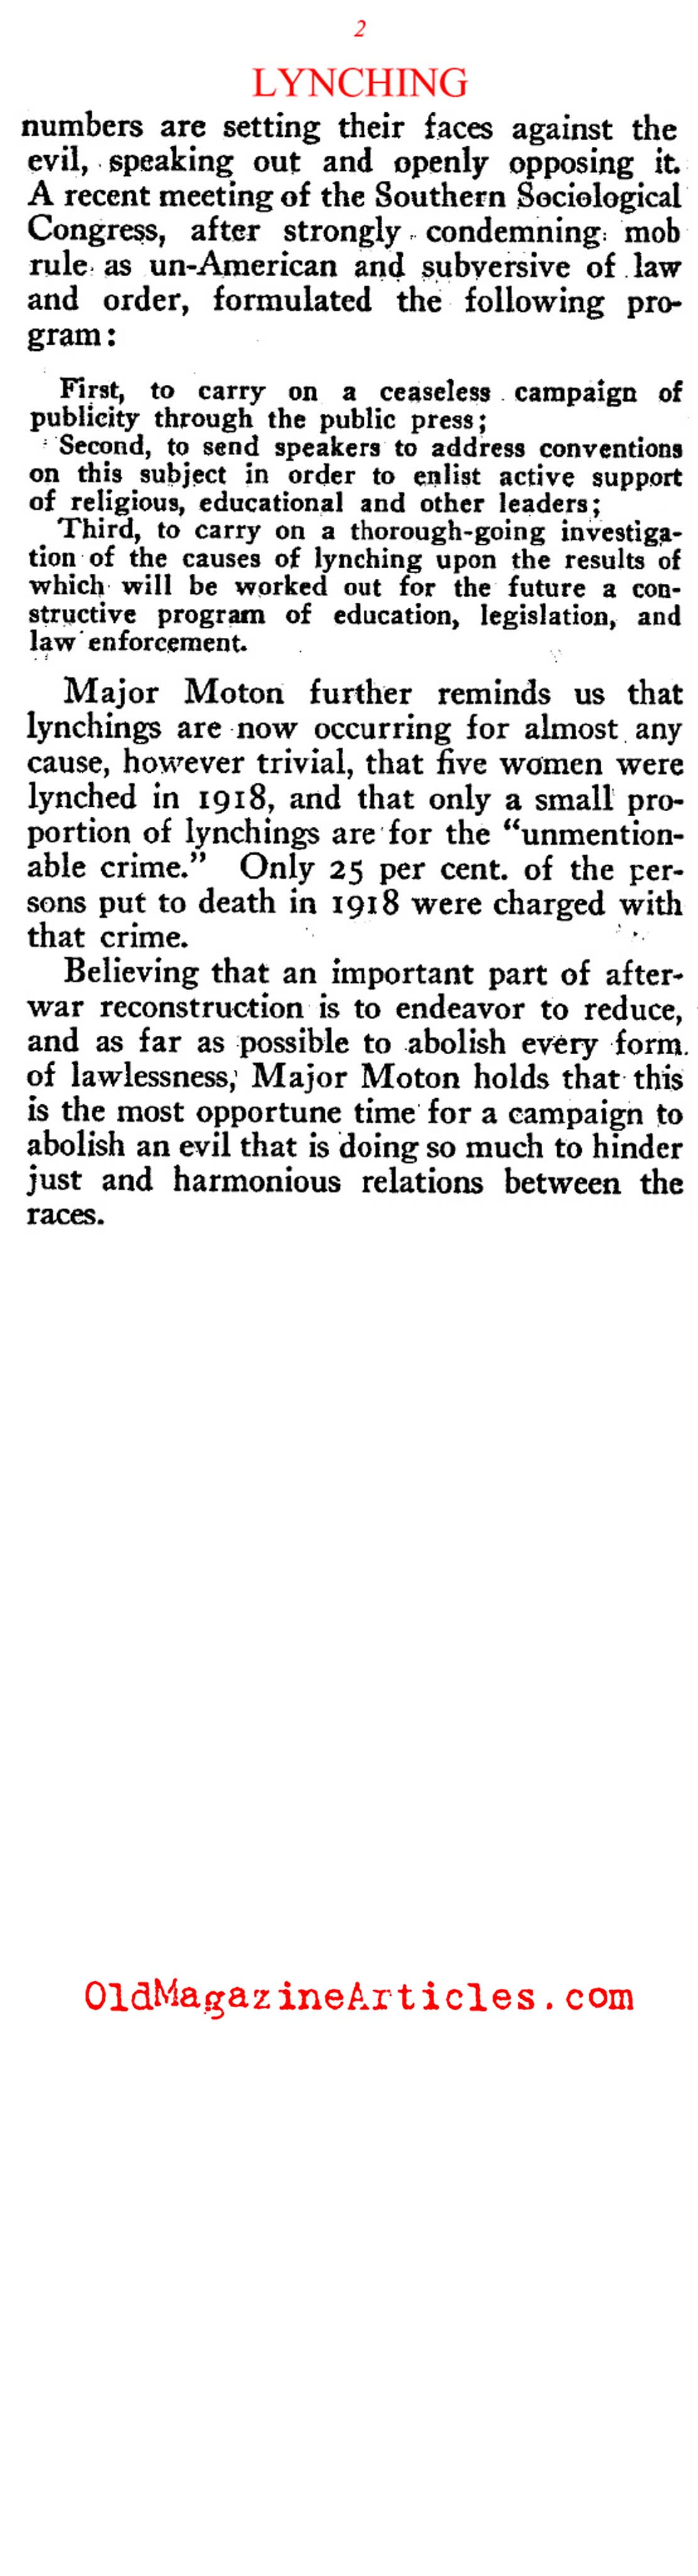 The Lynching Evil as Understood by Robert Moton (Review of Reviews, 1919)